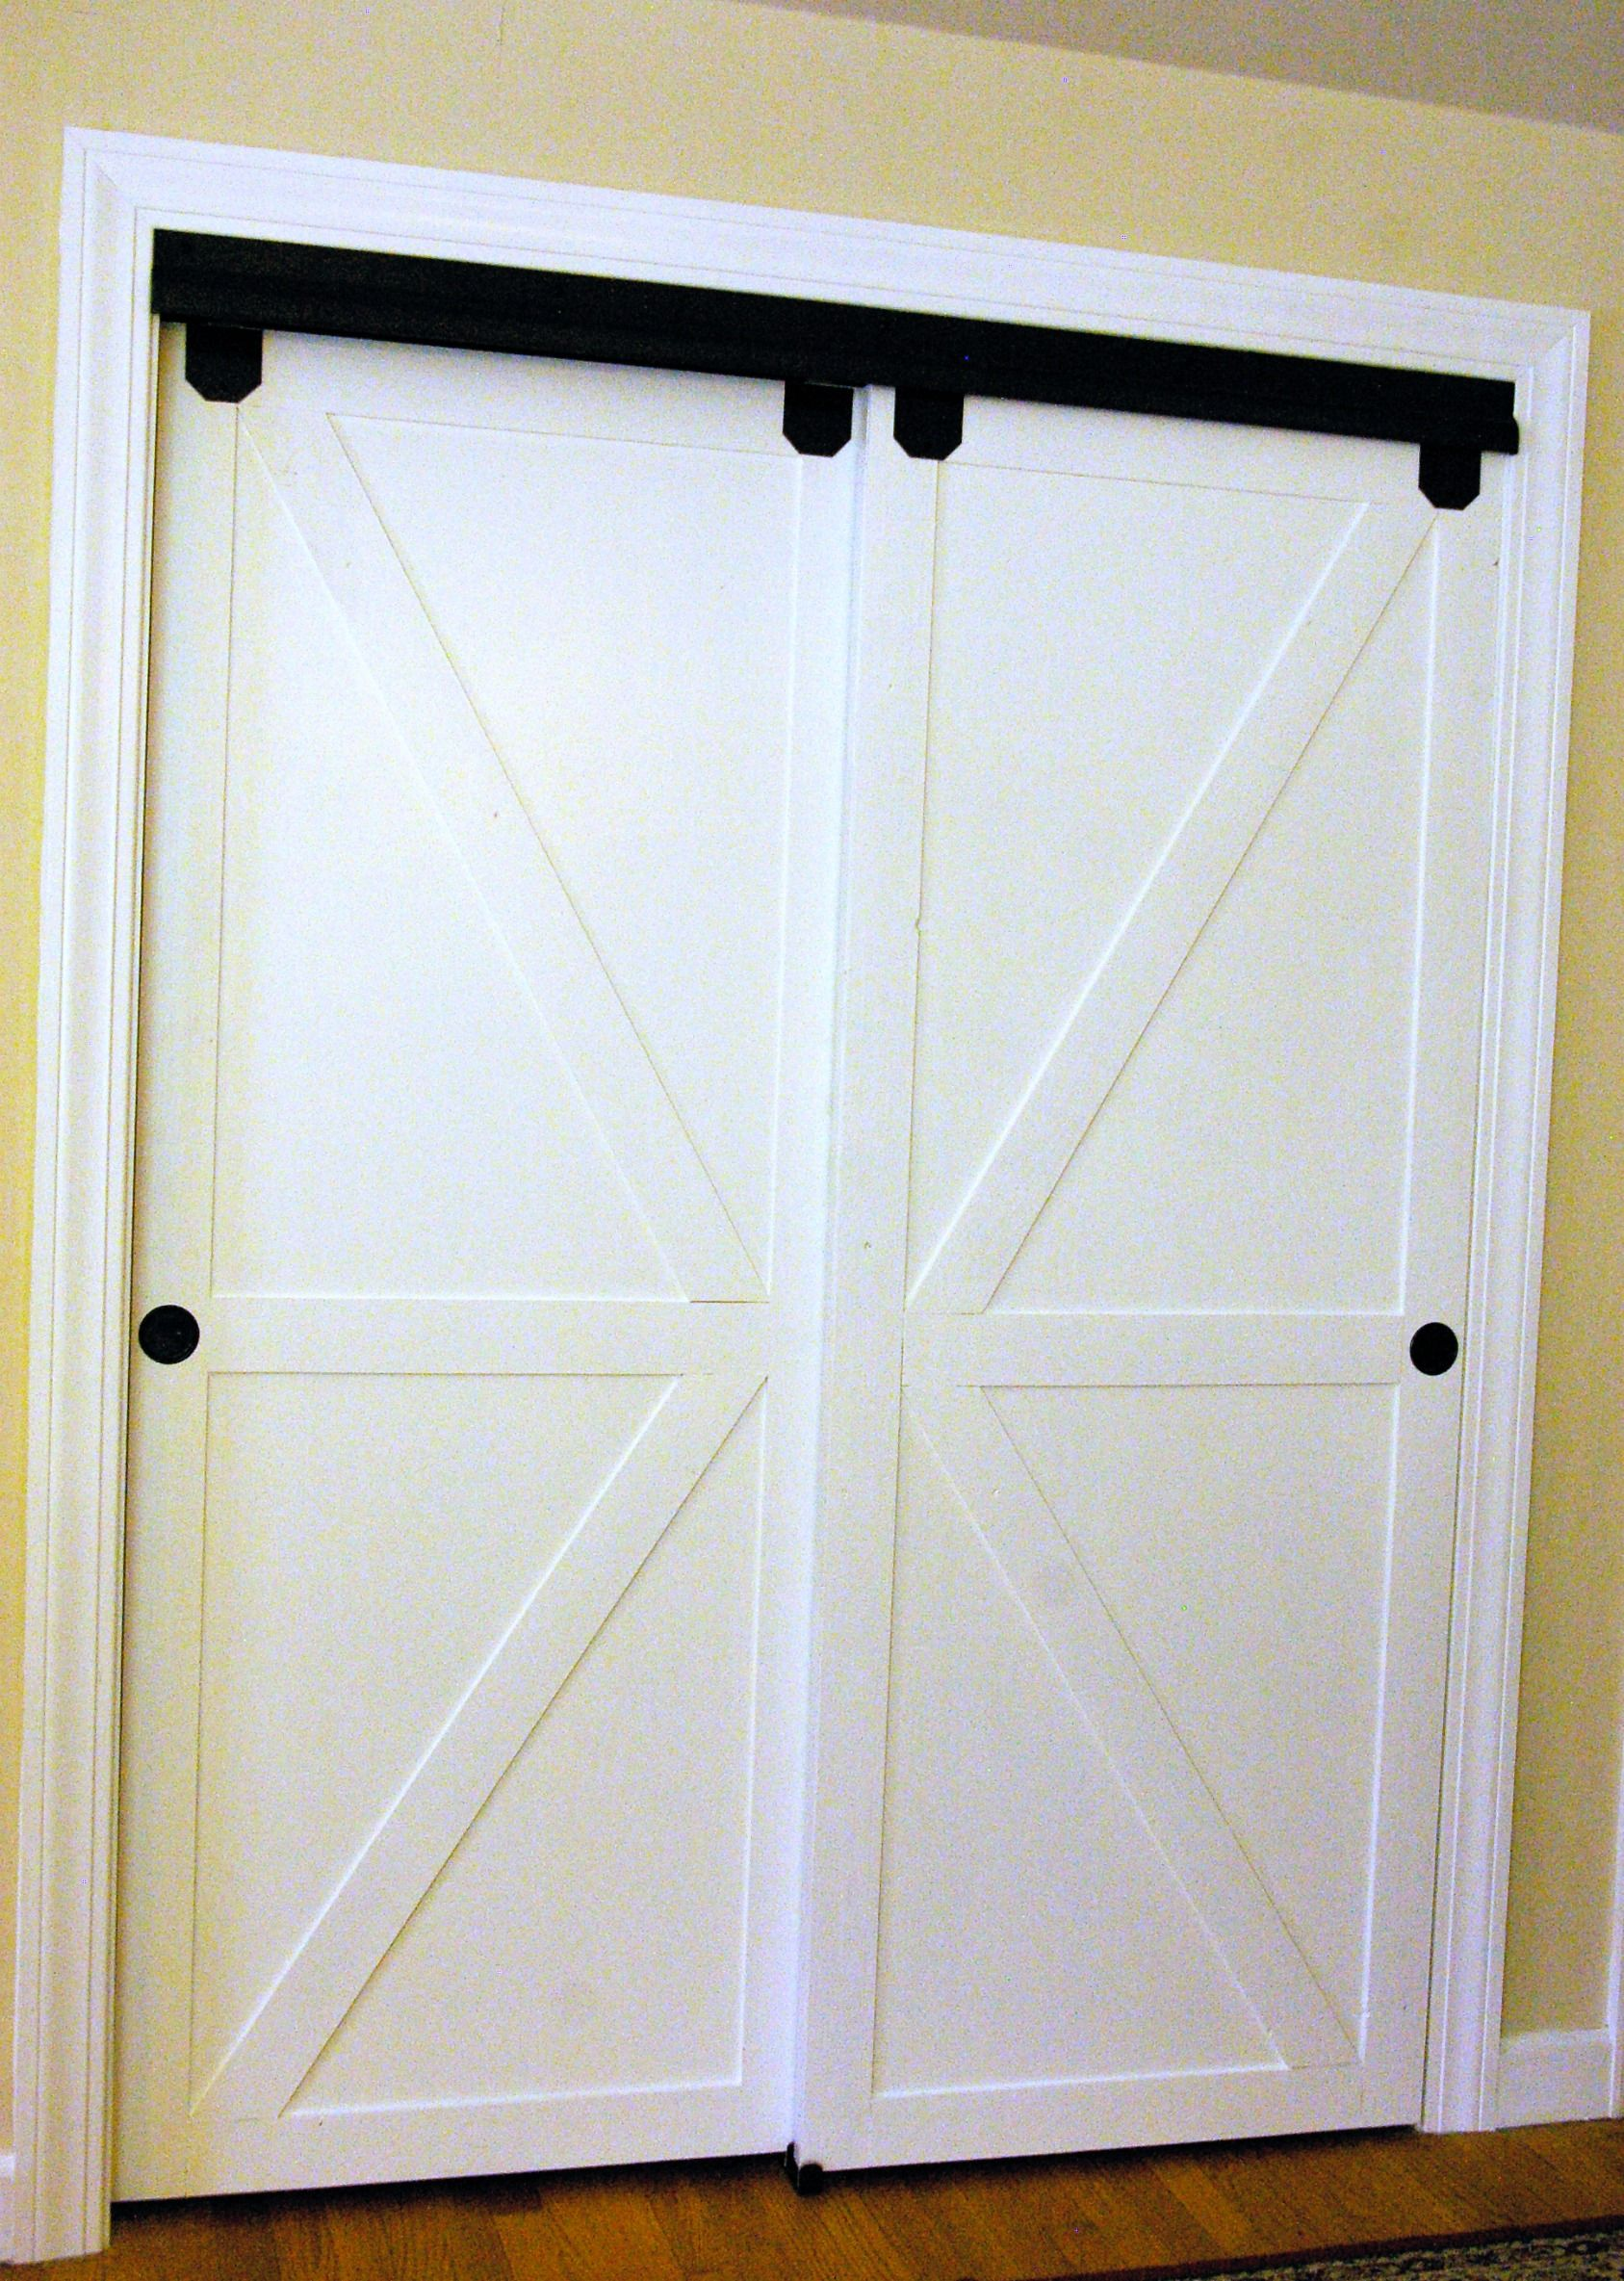 Diy Faux Barn Doors On A Sliding Bypass Closet Door 02 Featured On Remodelaholic Edit Bedroom Closet Doors Closet Door Makeover Sliding Closet Doors